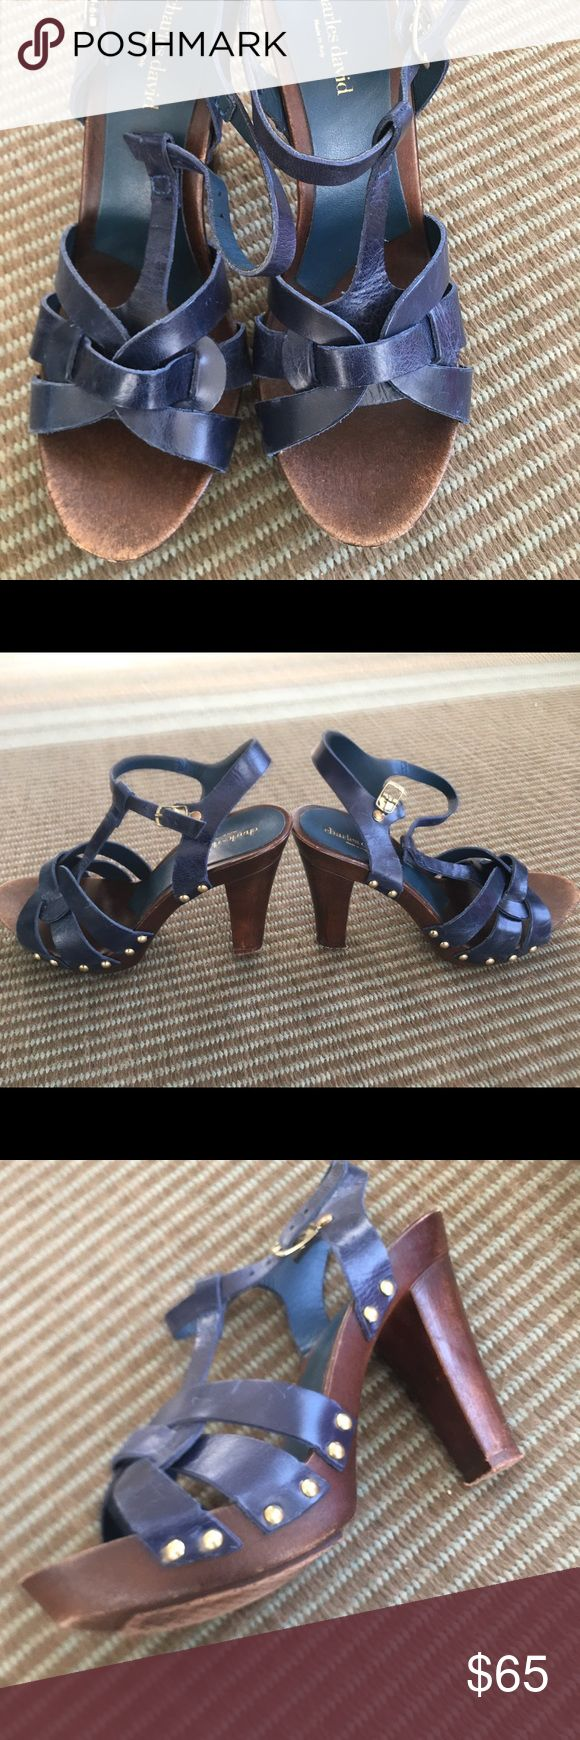 Charles David royal blue sandal high heel 7.5 Royal/midnight blue Charles David.  made in Italy.  Barely worn. 7.5 high heel.  Make me an offer Charles David Shoes Sandals